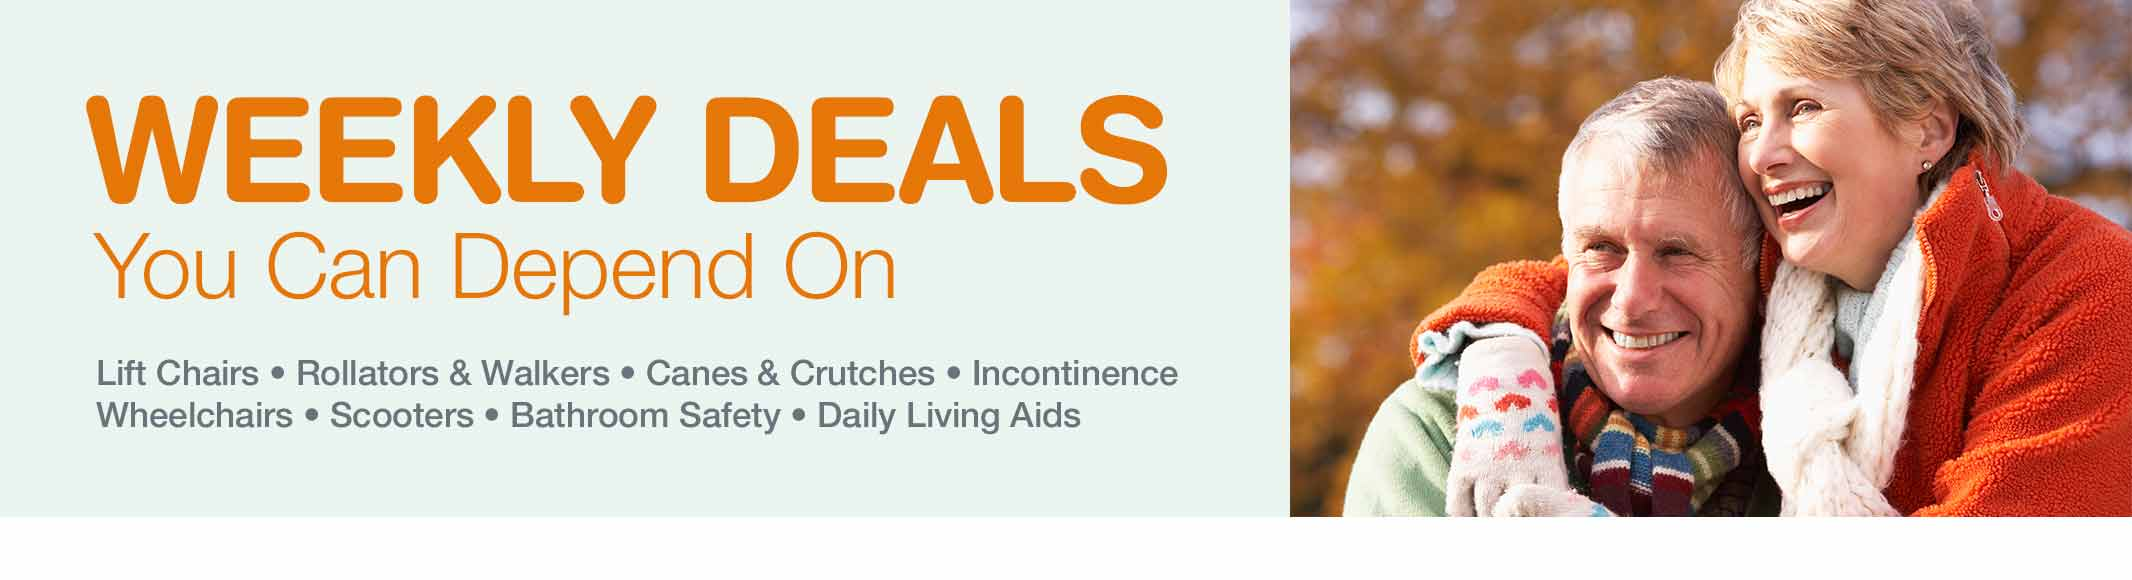 home health care solutions weekly deals walgreens home health care solutions weekly deals